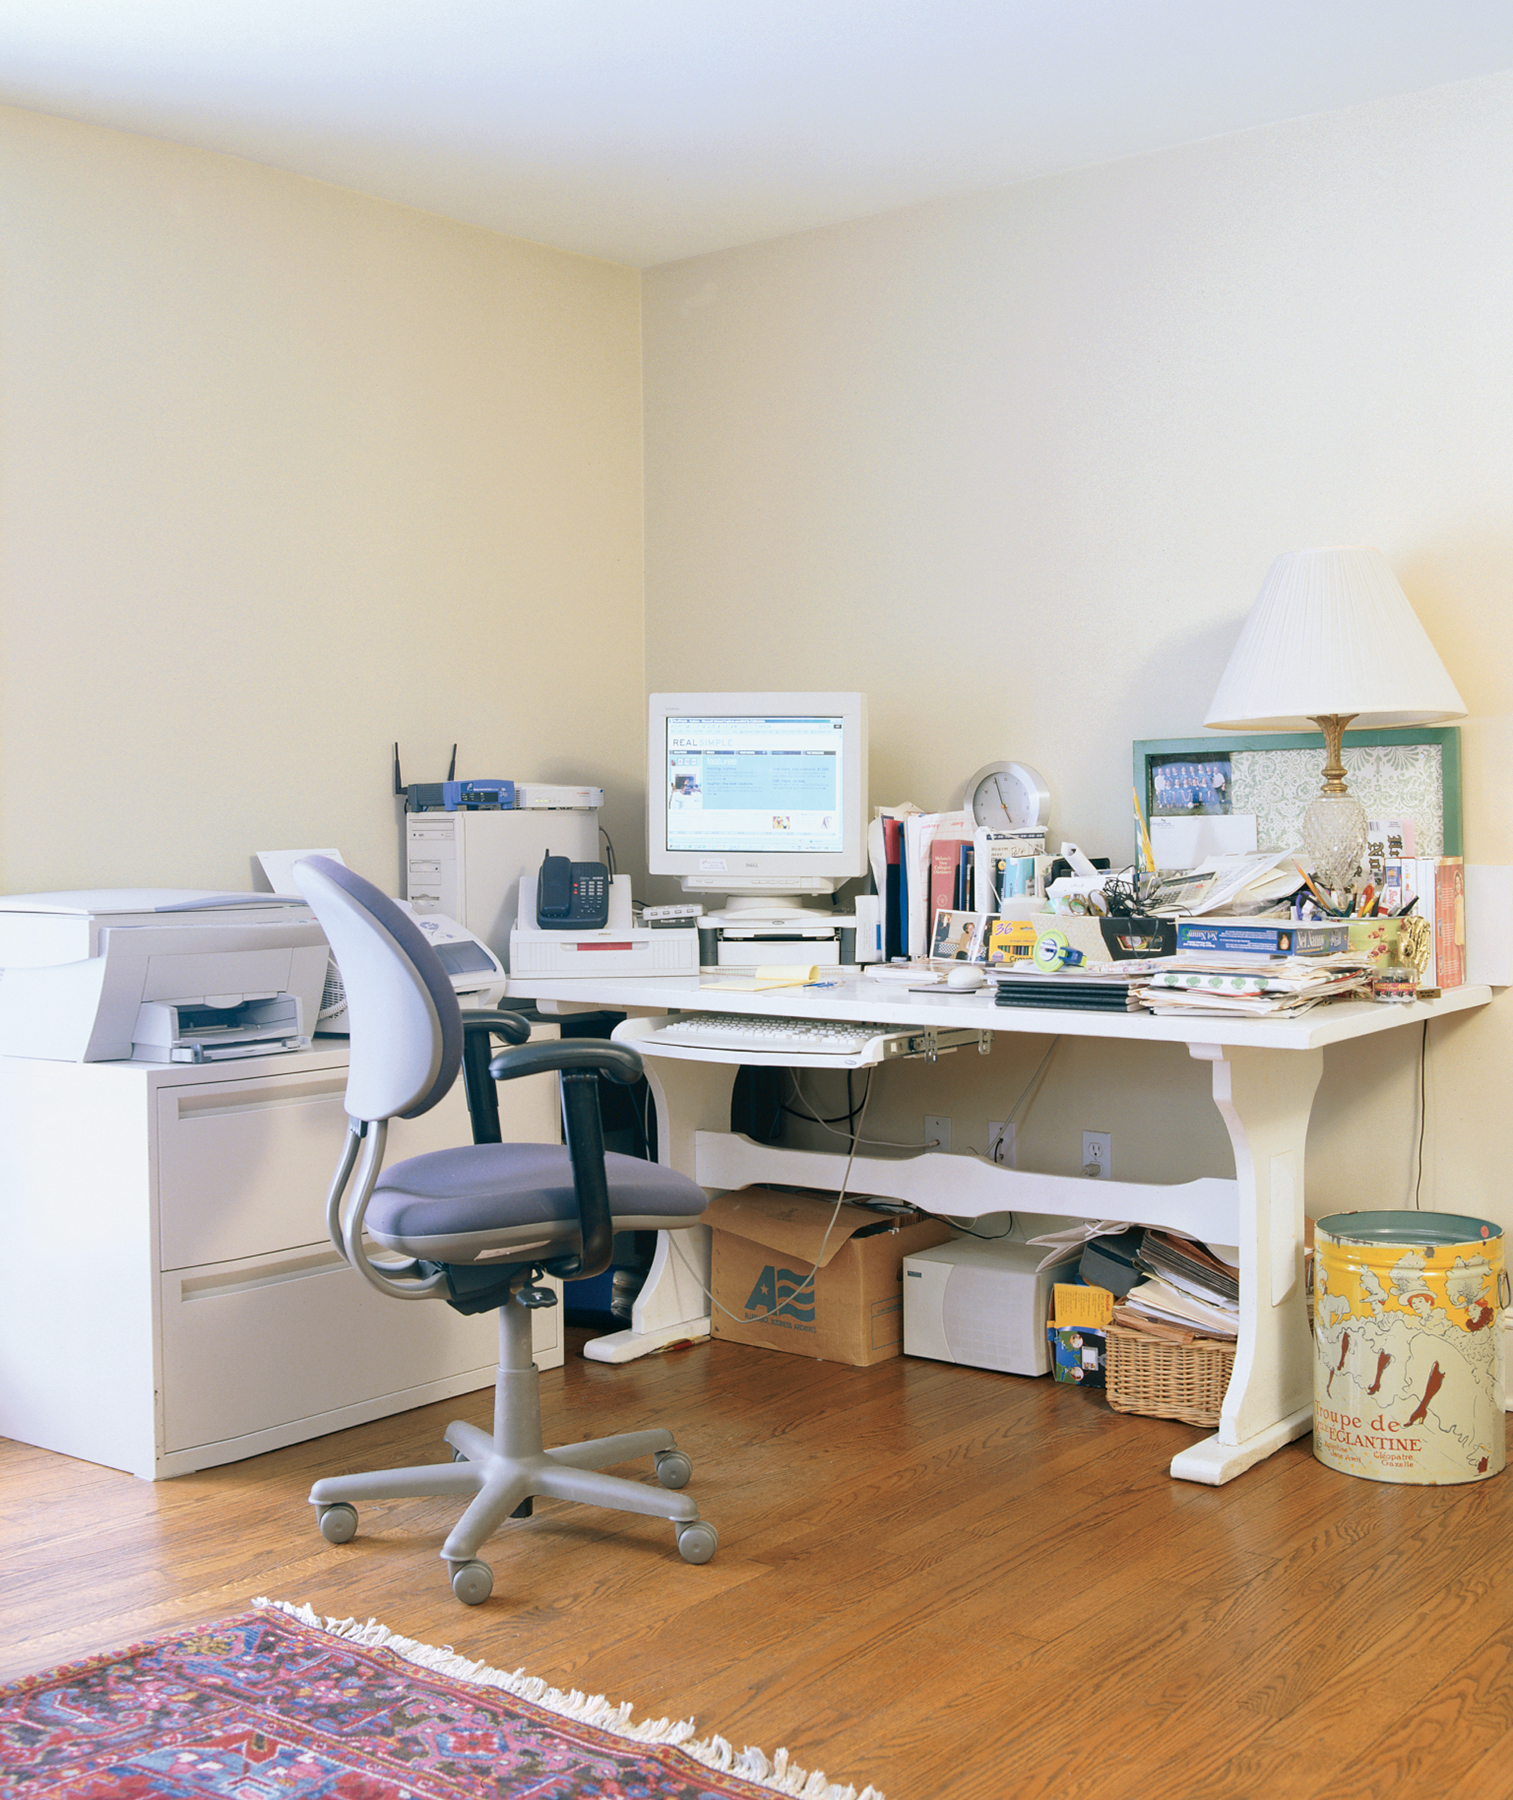 A cluttered home office